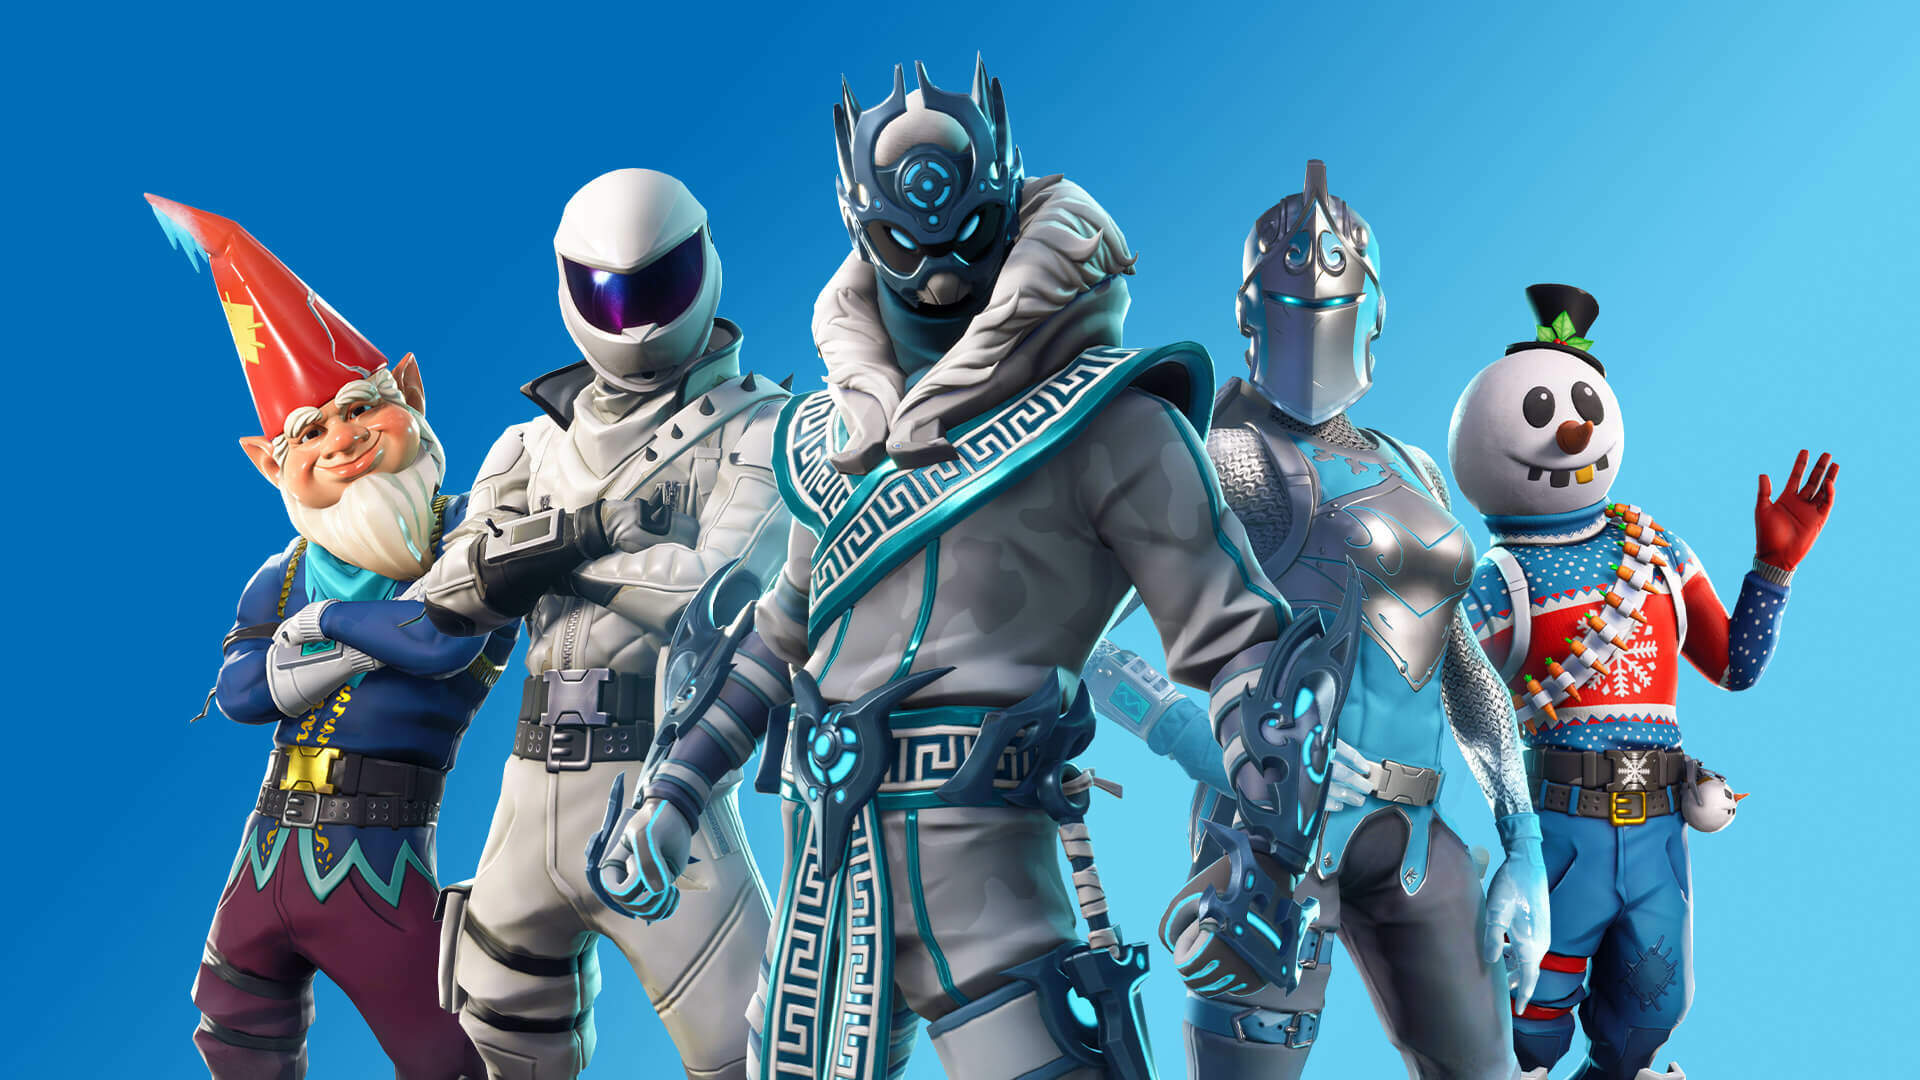 Fortnite Just Brought Old-School Split-Screen Multiplayer to Modern Consoles